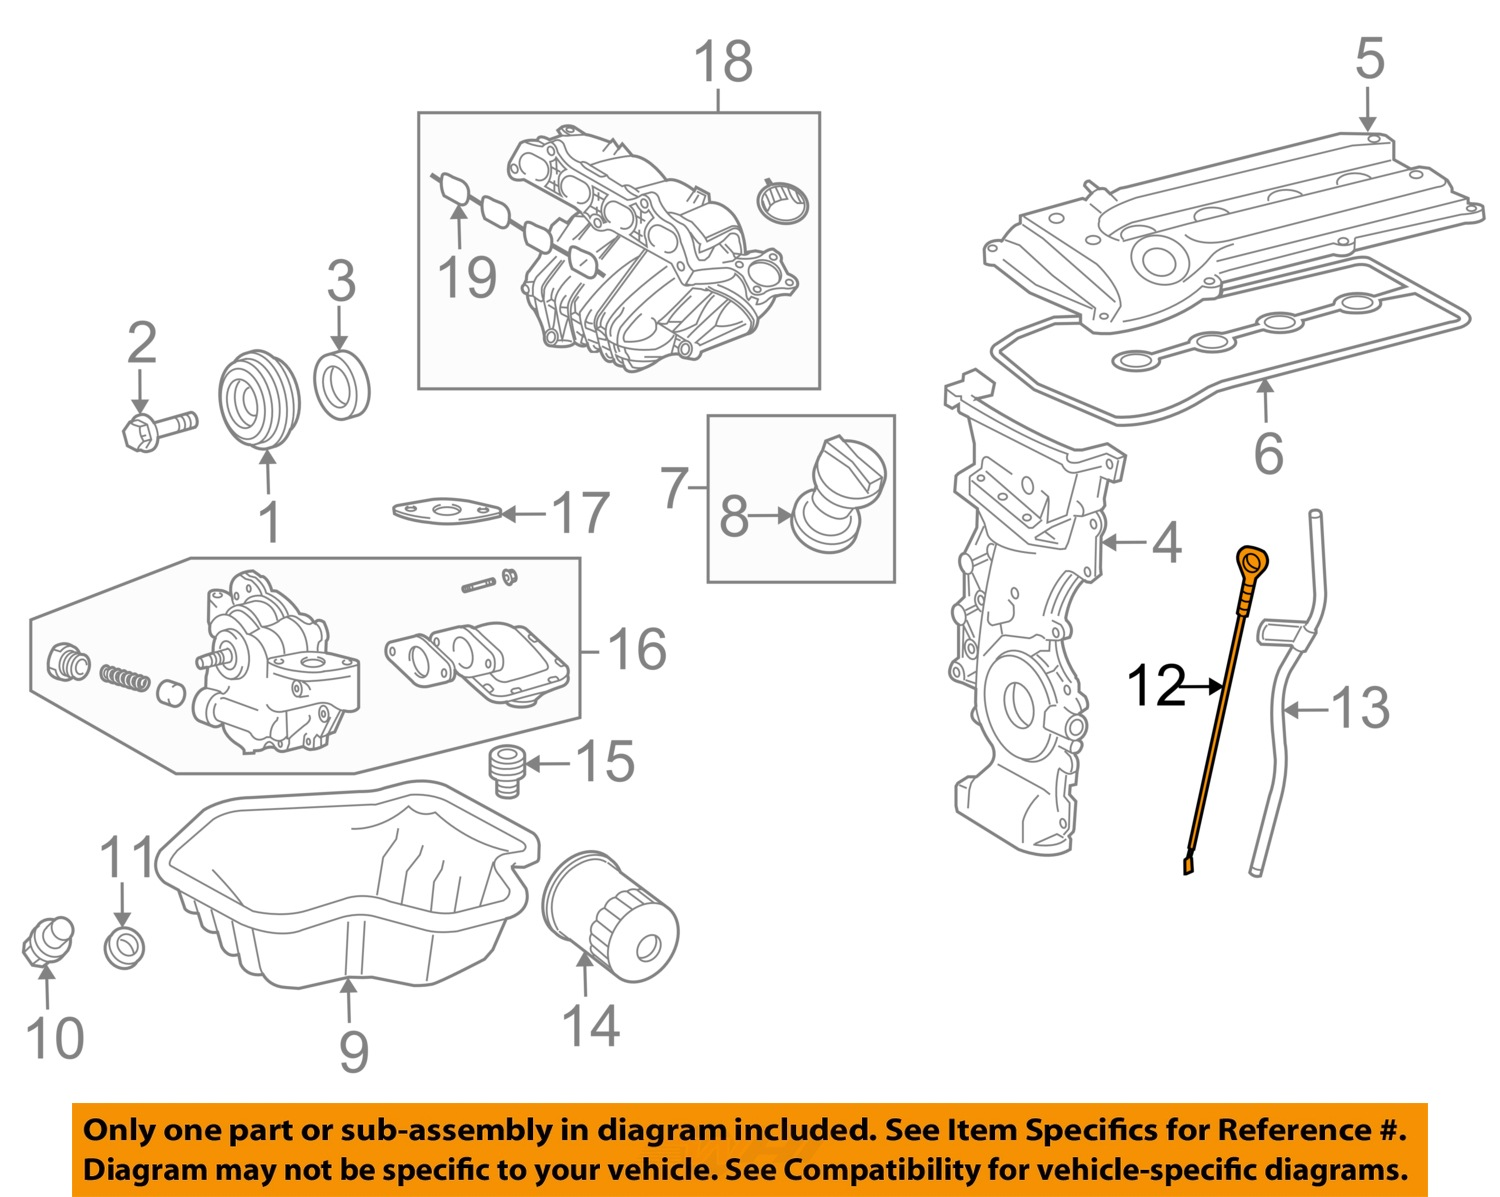 engine fluids diagram toyota oem engine-oil fluid dipstick 1530128031 | ebay